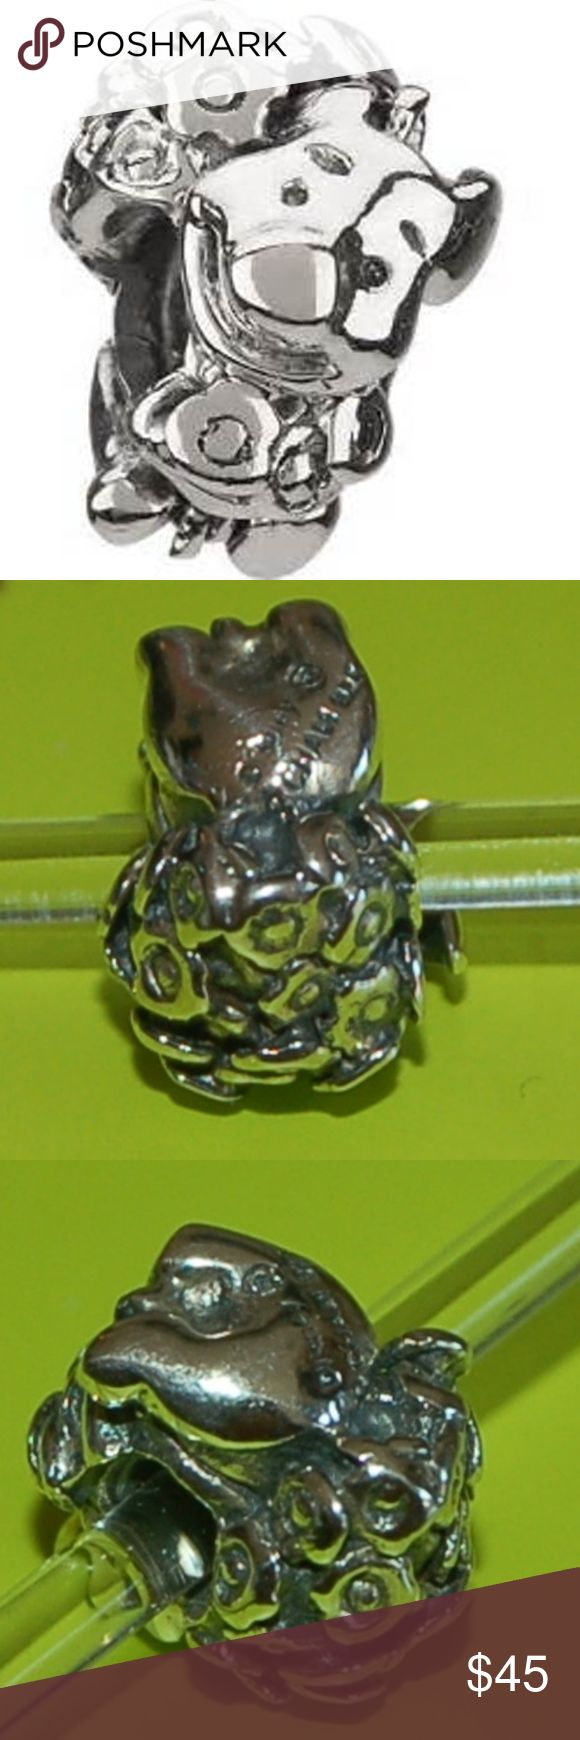 Authentic Chamilia PIGLET WITH FLOWERS Bead Chamilia Disney Winnie the Pooh~PIGLET WITH FLOWERS~ Sterling Charm Bead   Keep the magic of childhood dreams alive with the Chamilia Sterling Silver Disney PIGLET WITH FLOWERS from Winnie the Pooh Charm Bead  Chamilia No. DIS-21; Sterling .925 Silver  No Longer Produced & Retired!!  ~~~ A Great Addition To Your Chamilia/Pandora Disney Bracelet Collection ~~~ Chamilia Jewelry Bracelets